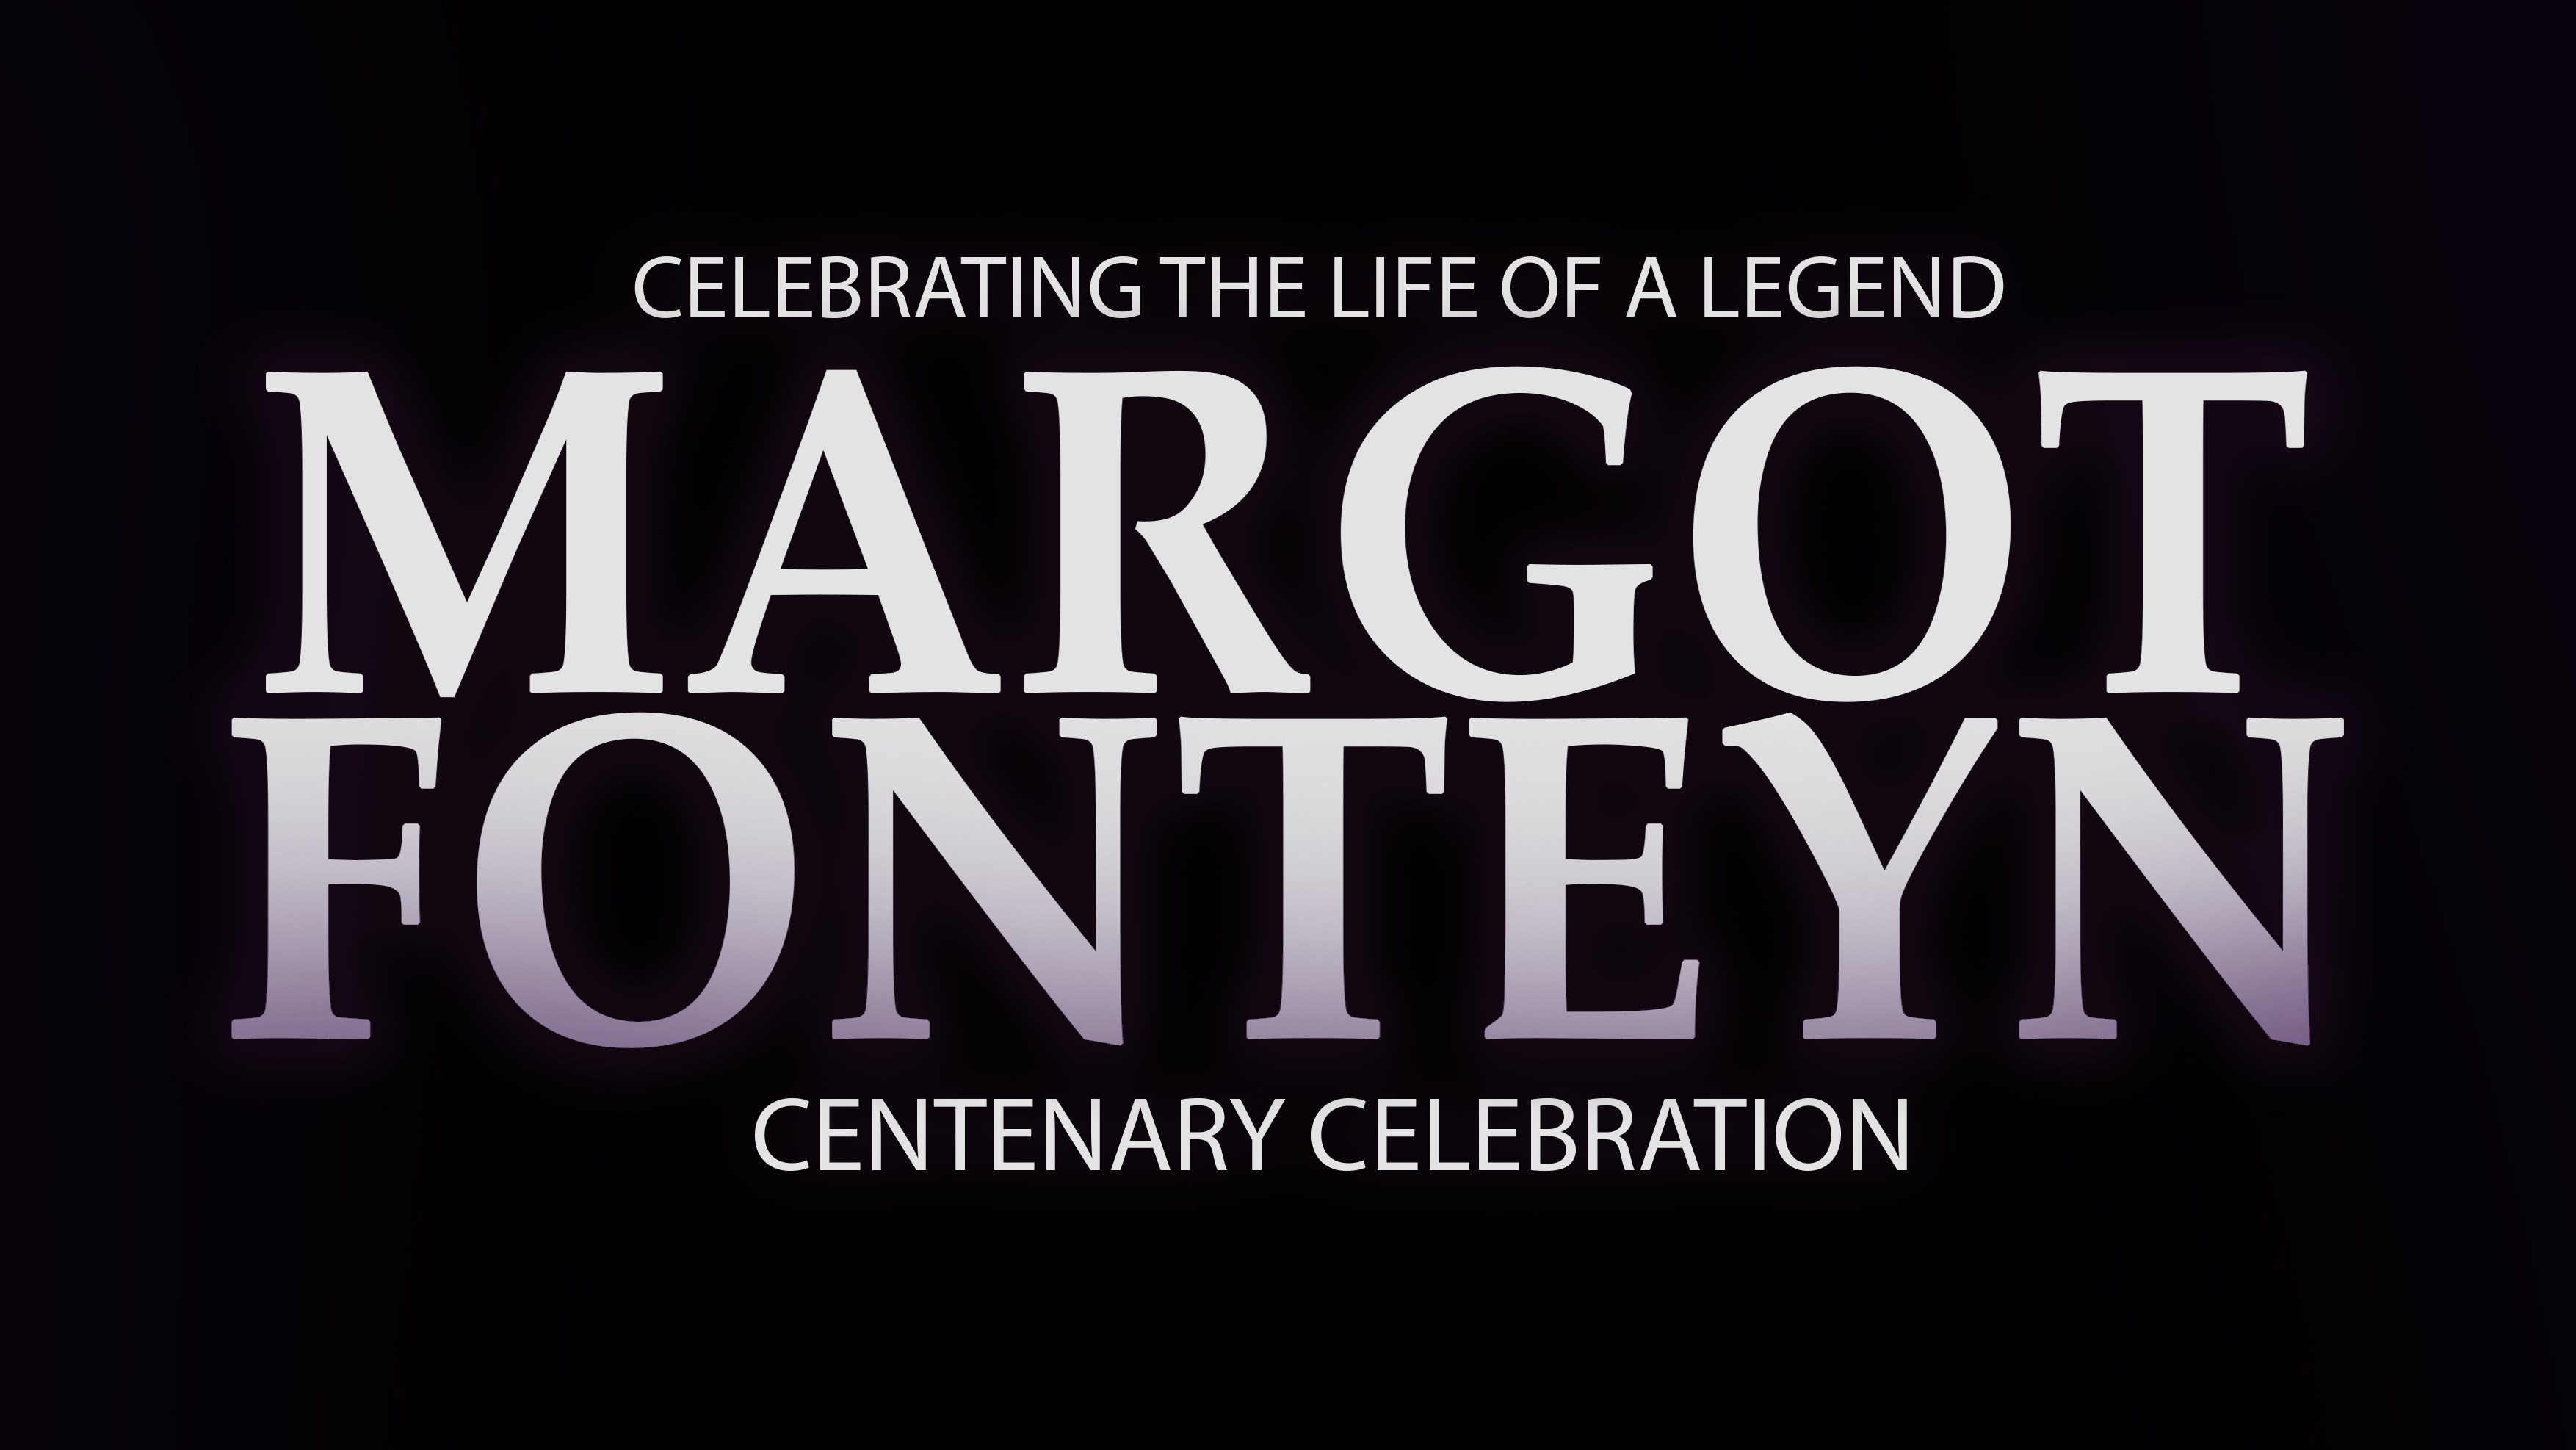 The Margot Fonteyn Celebration